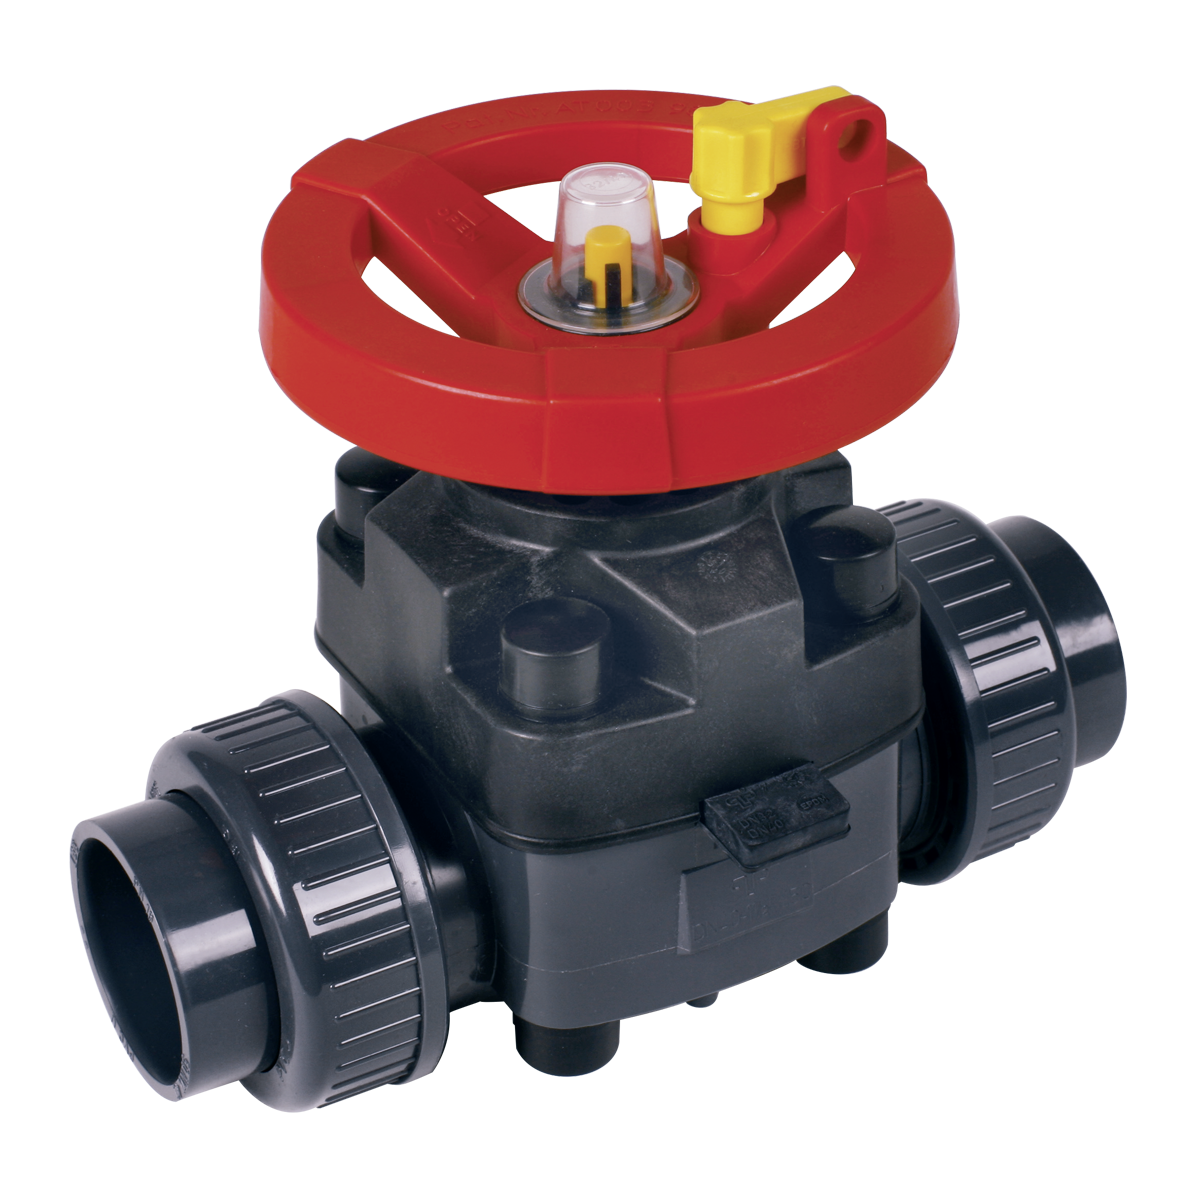 Praher diaphragm valve T4 PVC with socket, grey, red, yellow